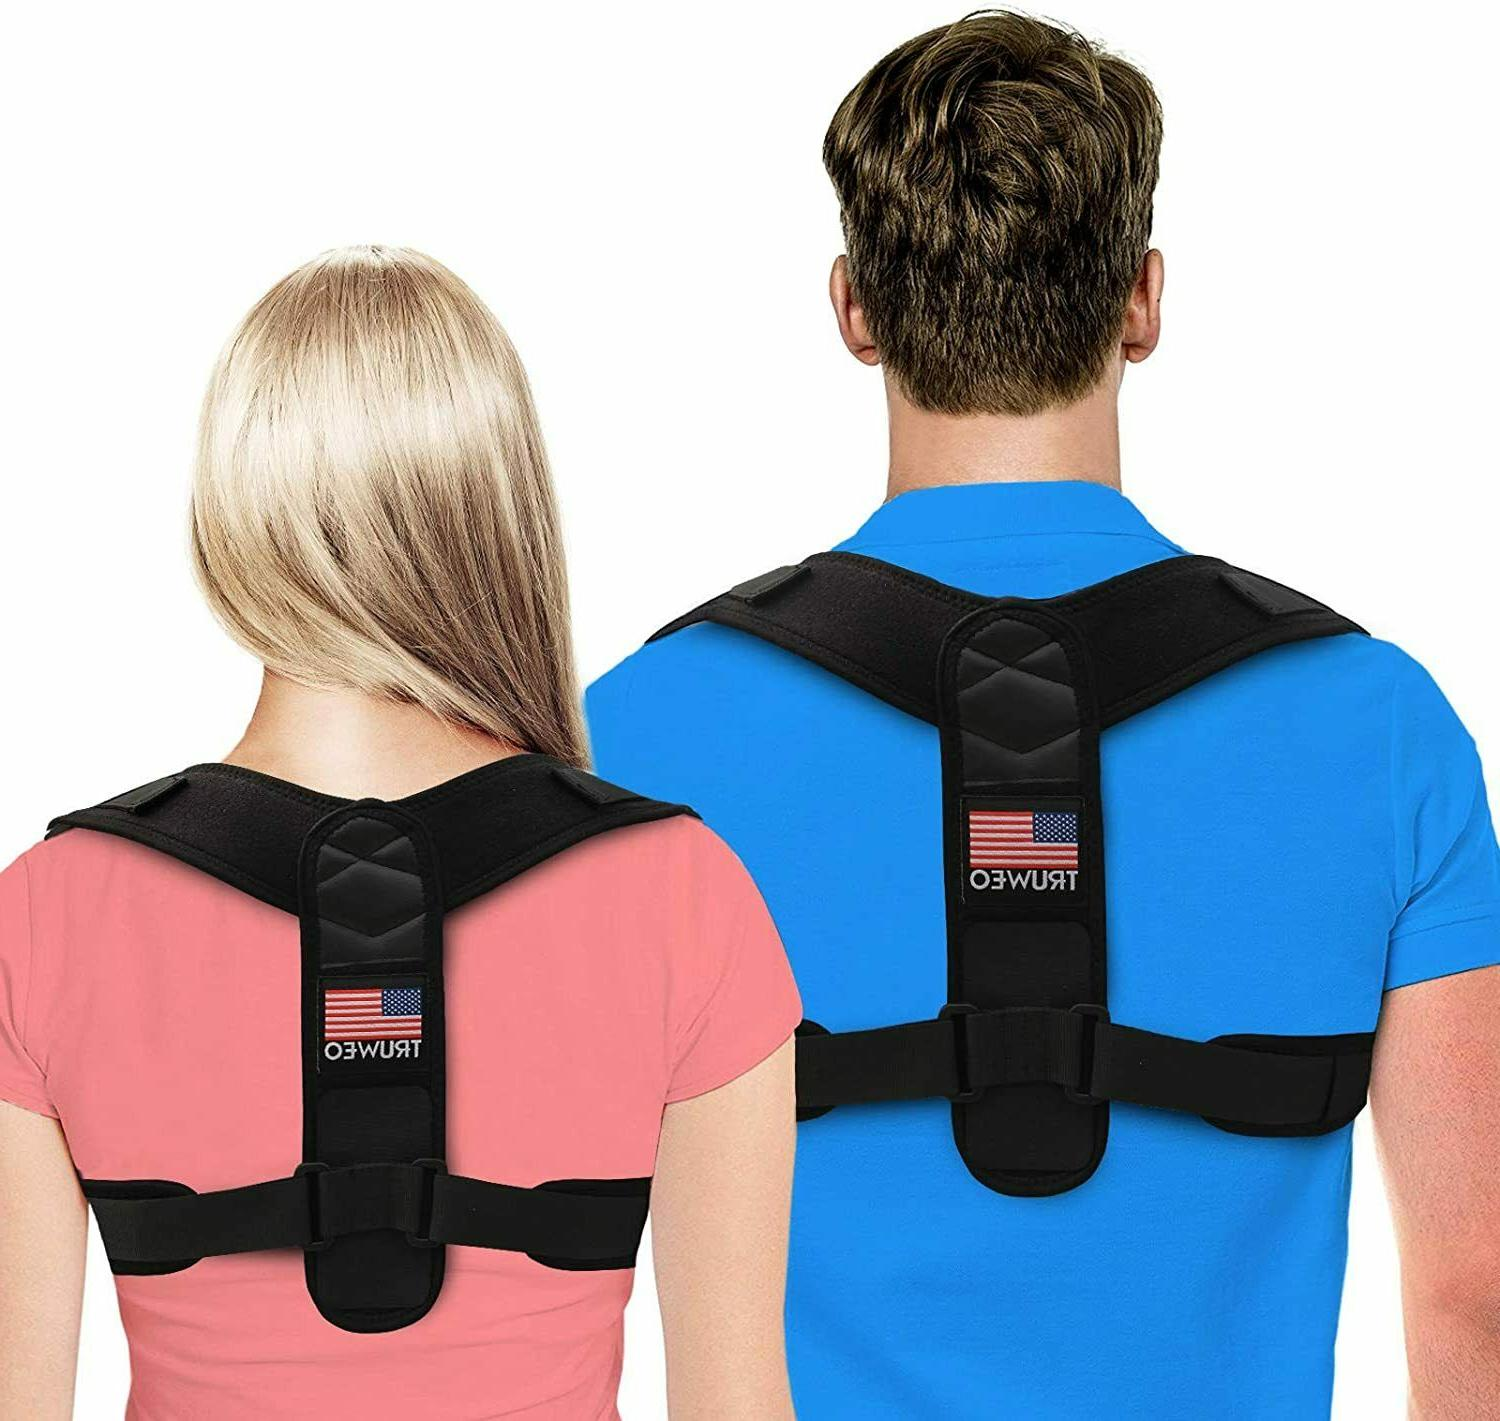 posture corrector for men and women usa